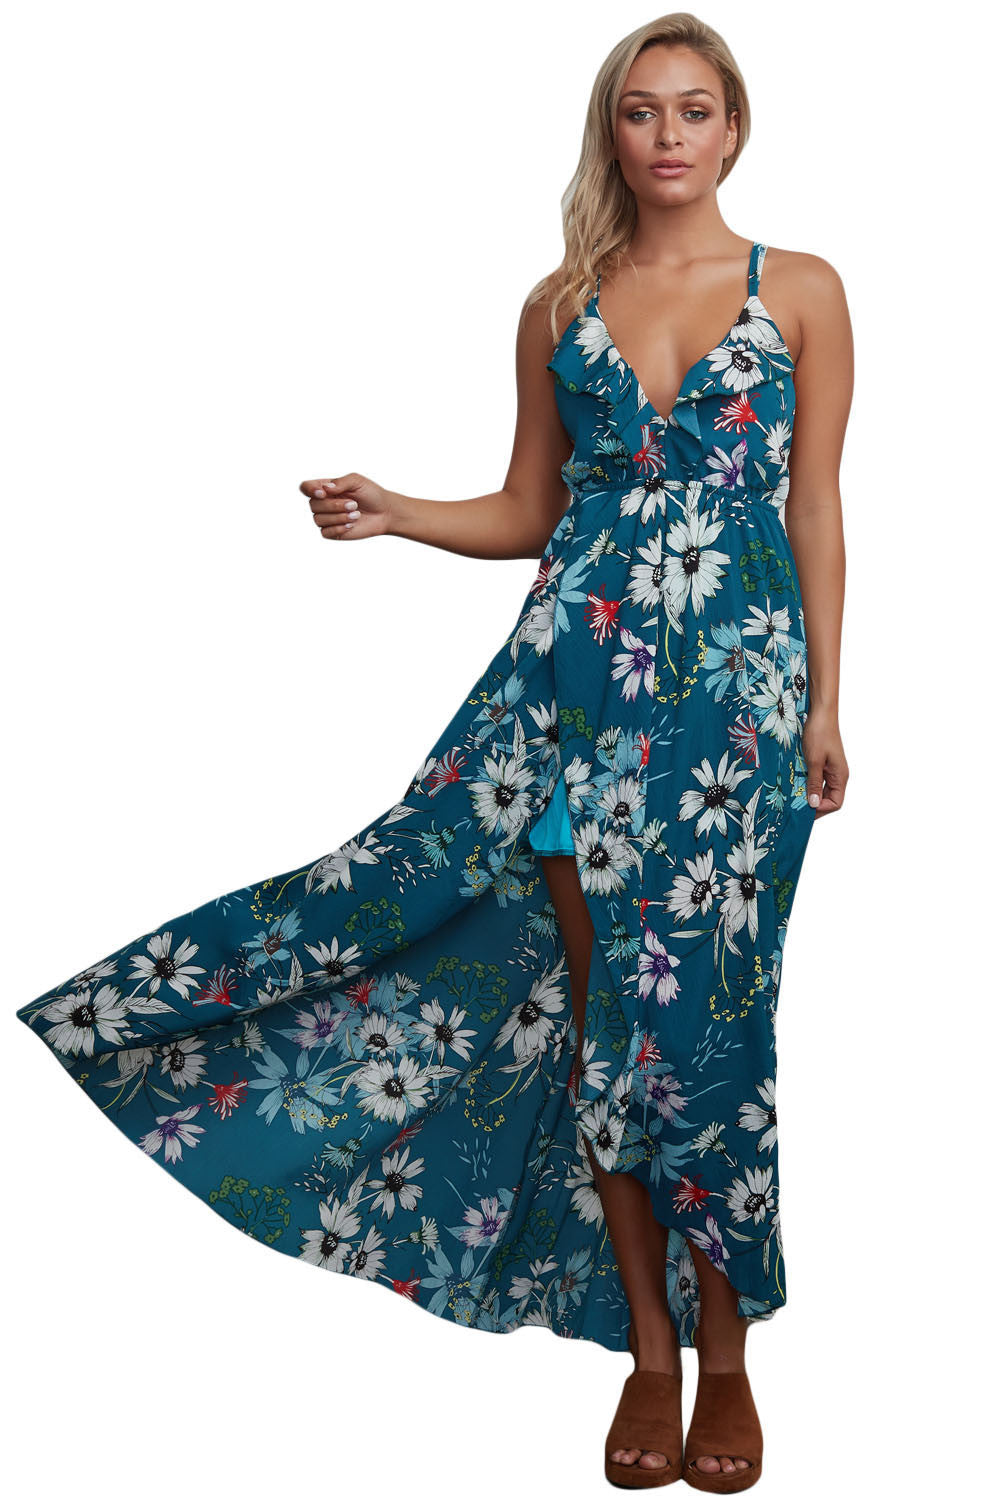 Boho Dress V Neck Bohemian Chiffon Long Dress Strap Cross Backless Maxi Dress for Beach - Gisselle Morales